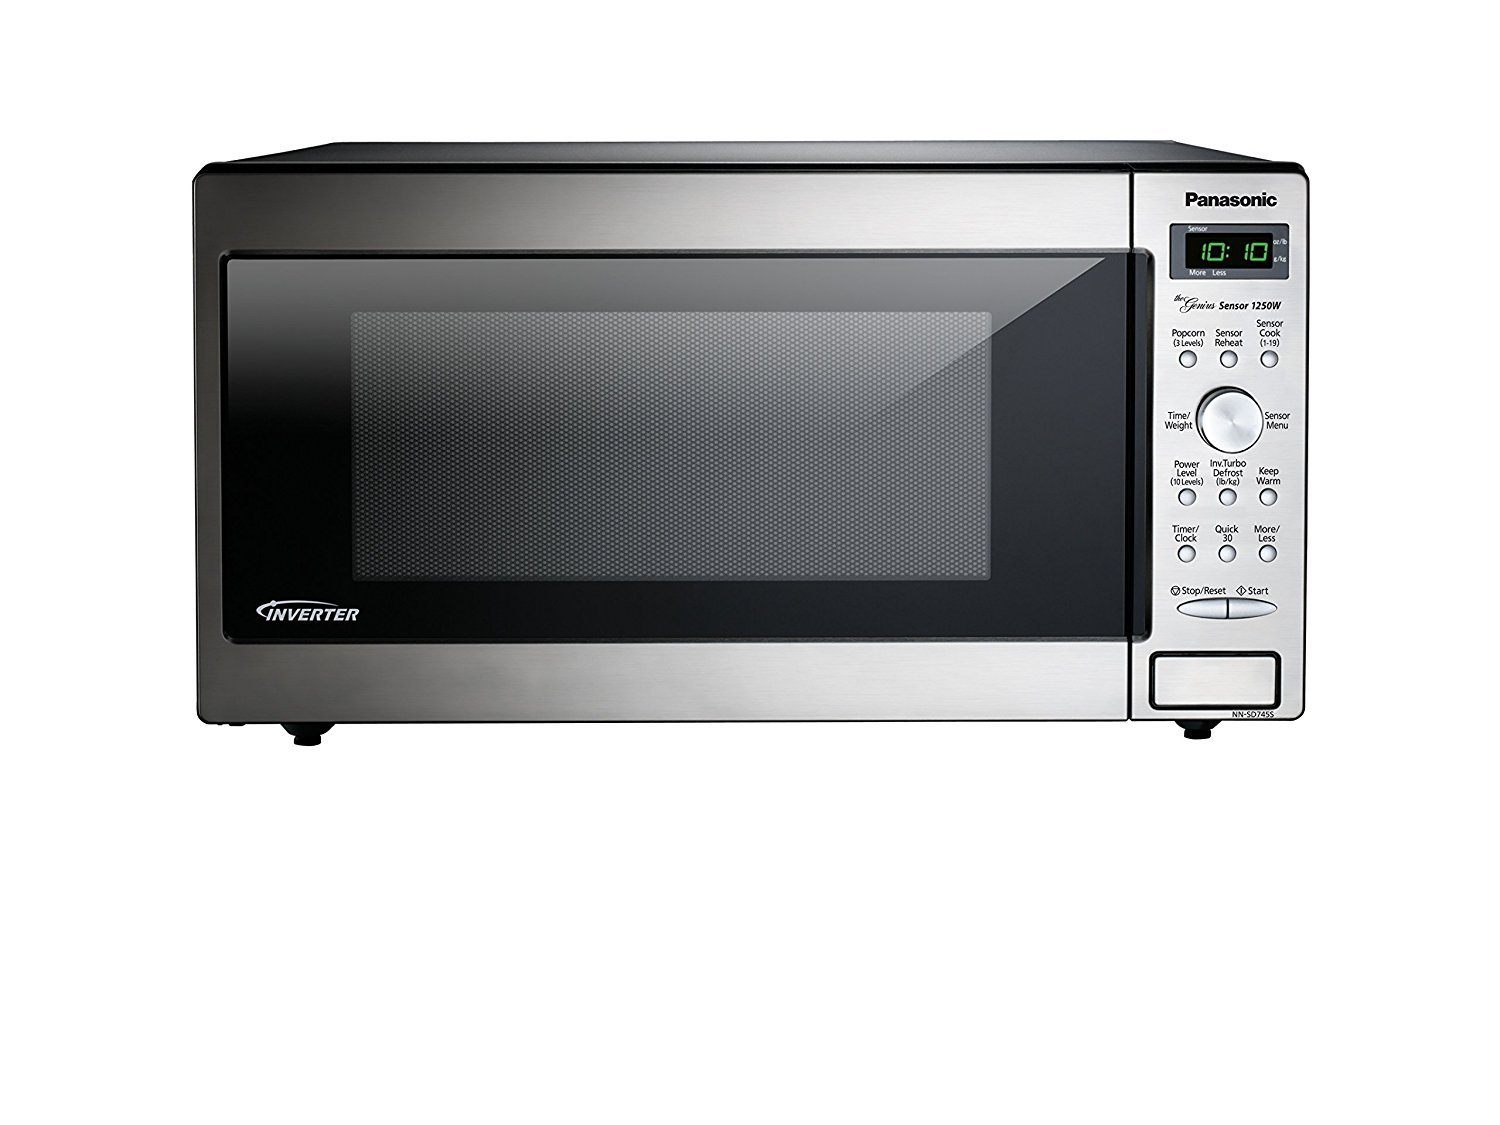 Microwave Oven Compact Countertop Panasonic Electric Stainless Steel 1250 Watt 1.6 cu. ft. Inverter Cookware With Free Pot Holders